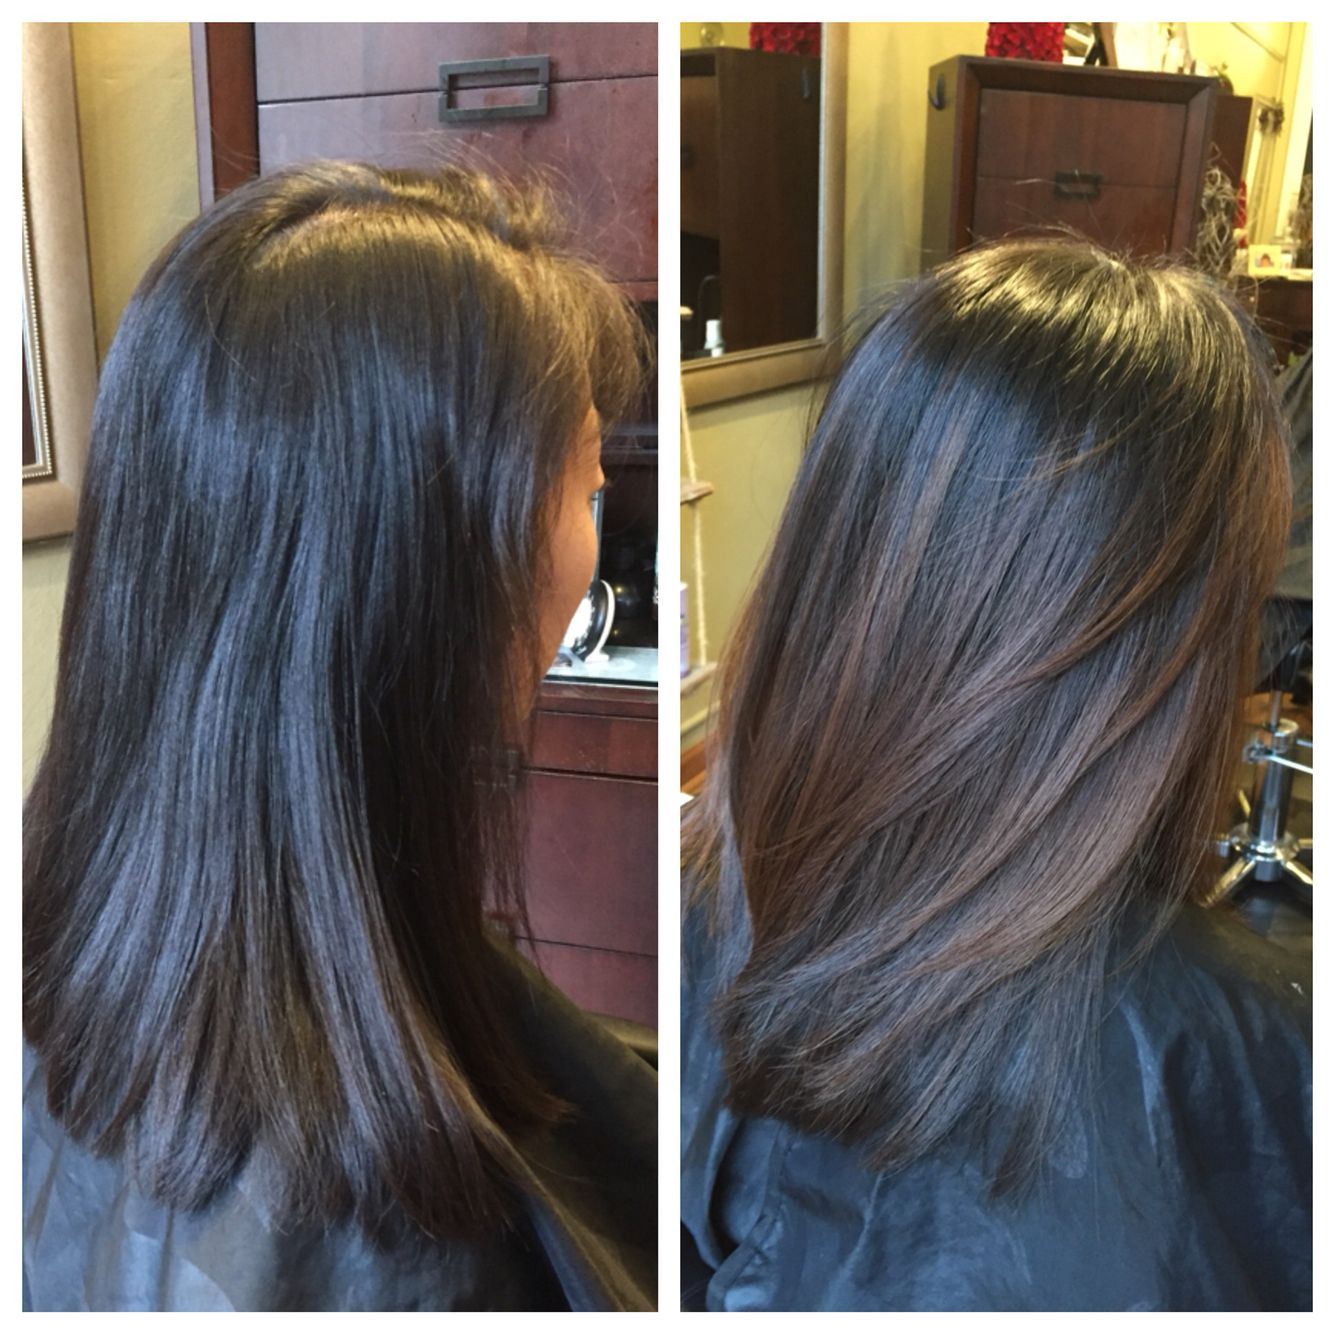 Subtle balayage highlights on straight hair. Before and